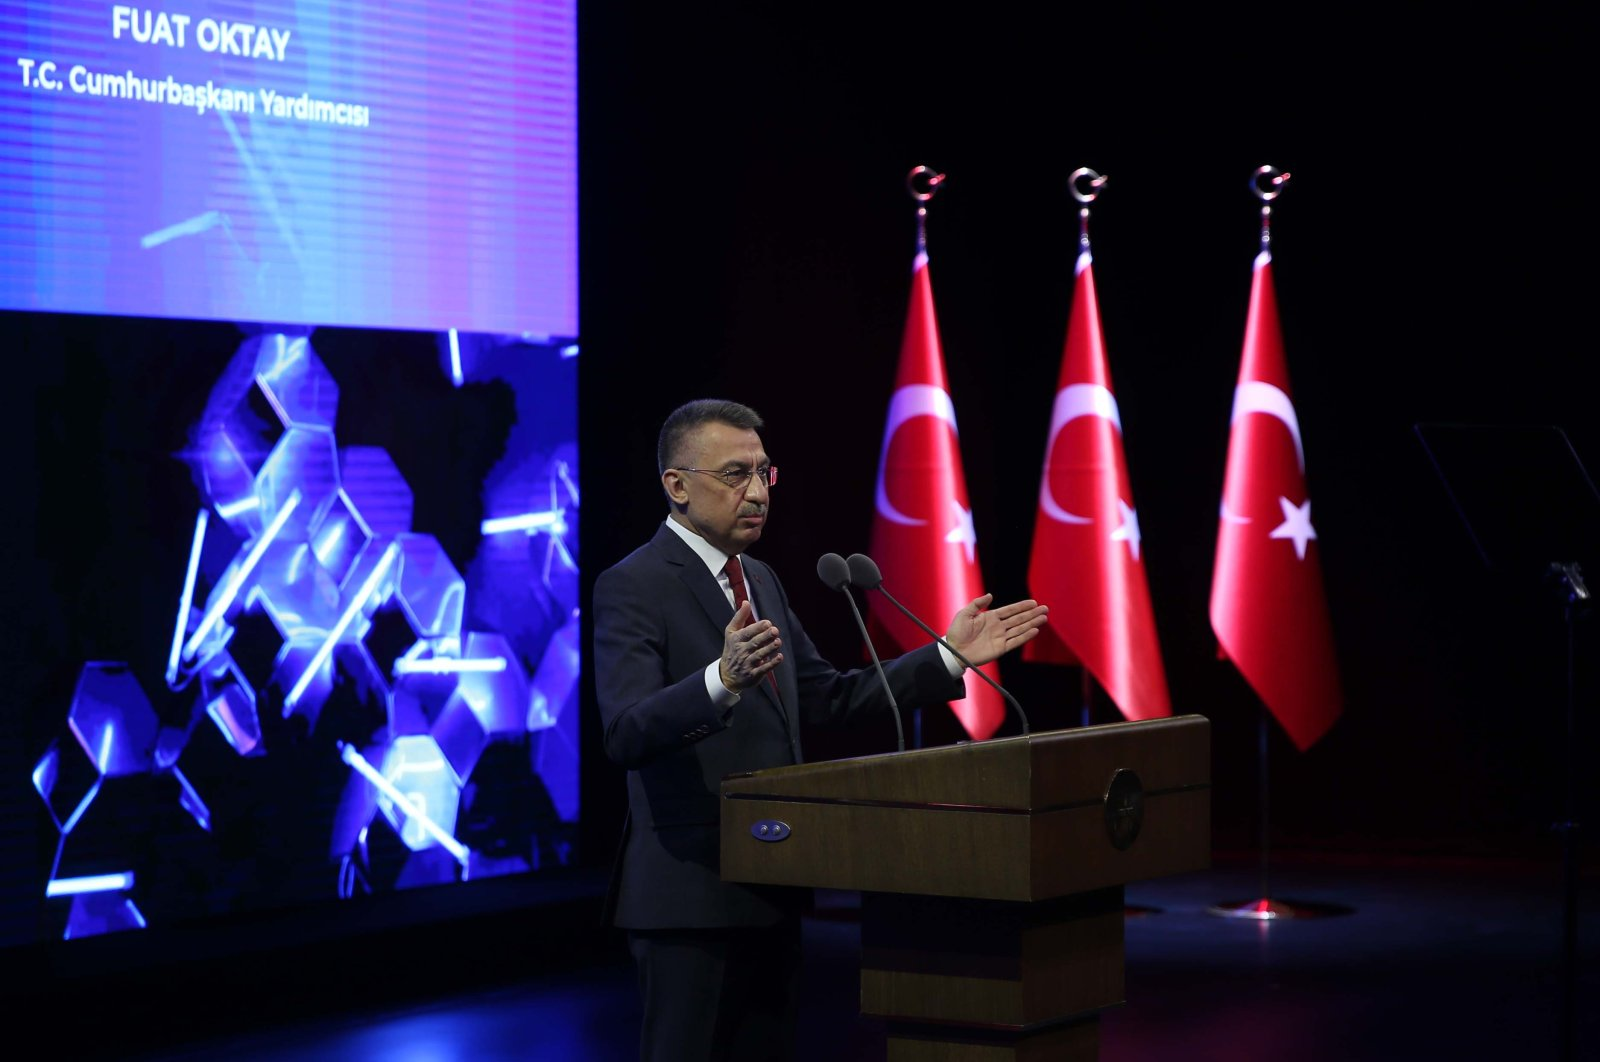 Vice President Fuat Oktay addresses the cybersecurity summit, in the capital Ankara, Turkey, Dec. 21, 2020. (AA Photo)